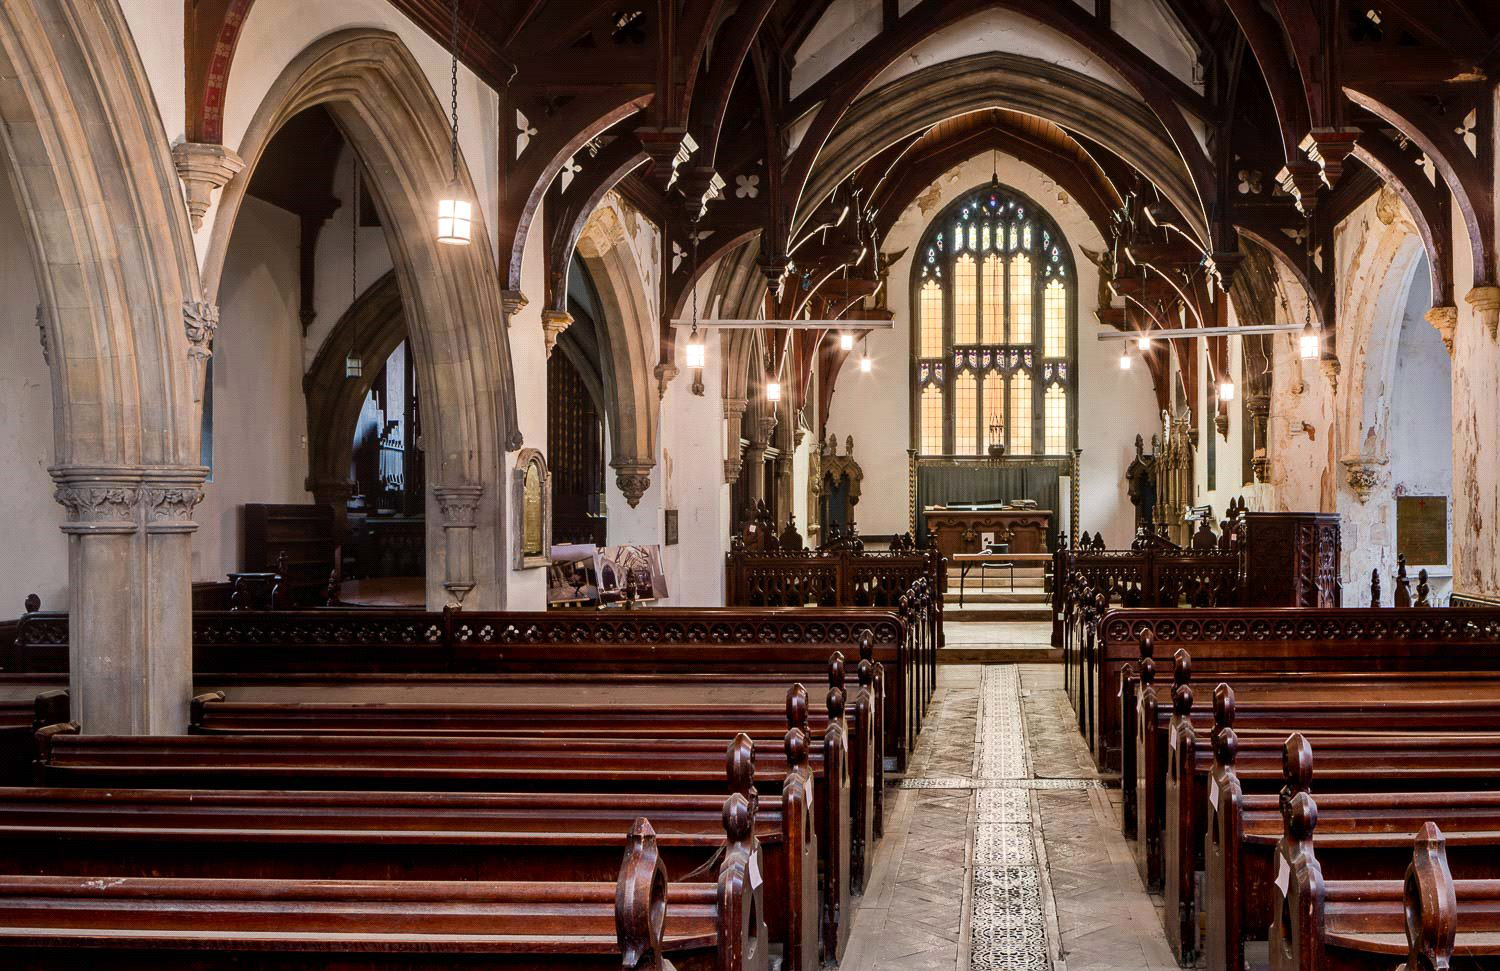 Interiors of St Luke's chapel – a defunct church in Chelsea ripe for conversion